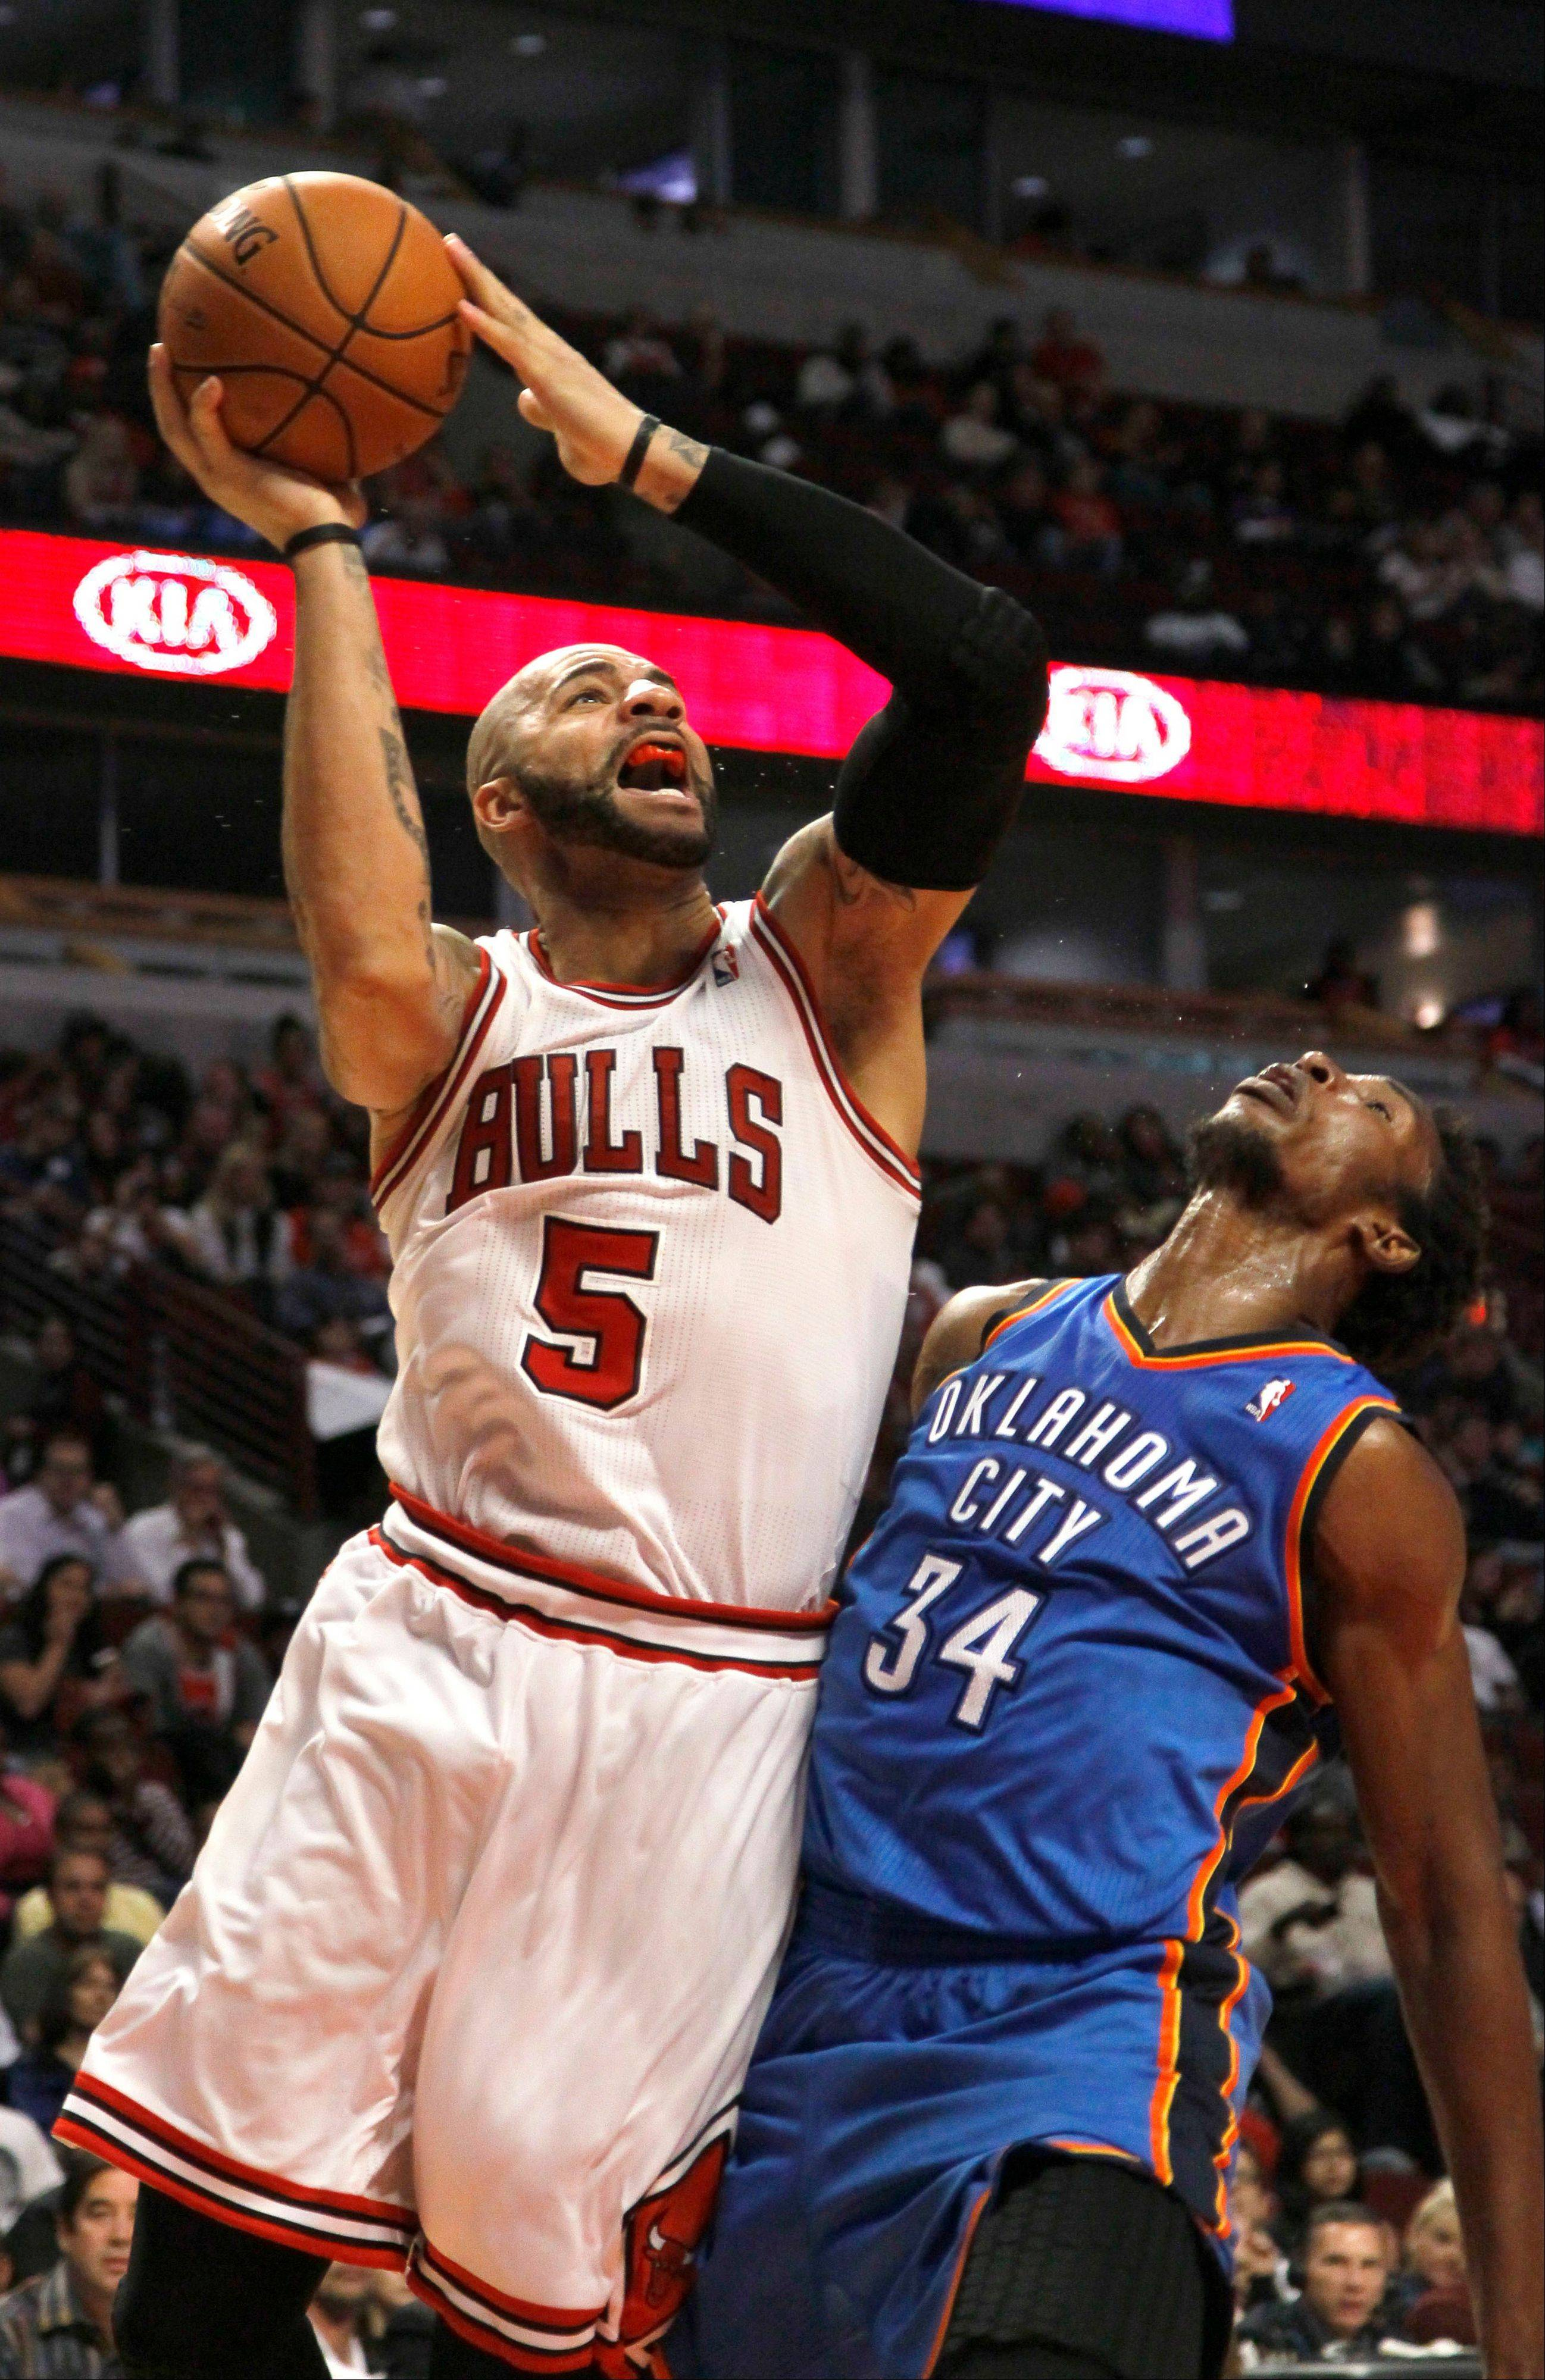 Chicago Bulls forward Carlos Boozer (5) shoots over Oklahoma City Thunder center Hasheem Thabeet during the second half of an NBA preseason basketball game, Tuesday, Oct. 23, 2012, in Chicago. The Bulls won 94-89. Boozer had 24 points, 12 rebounds and five assists.